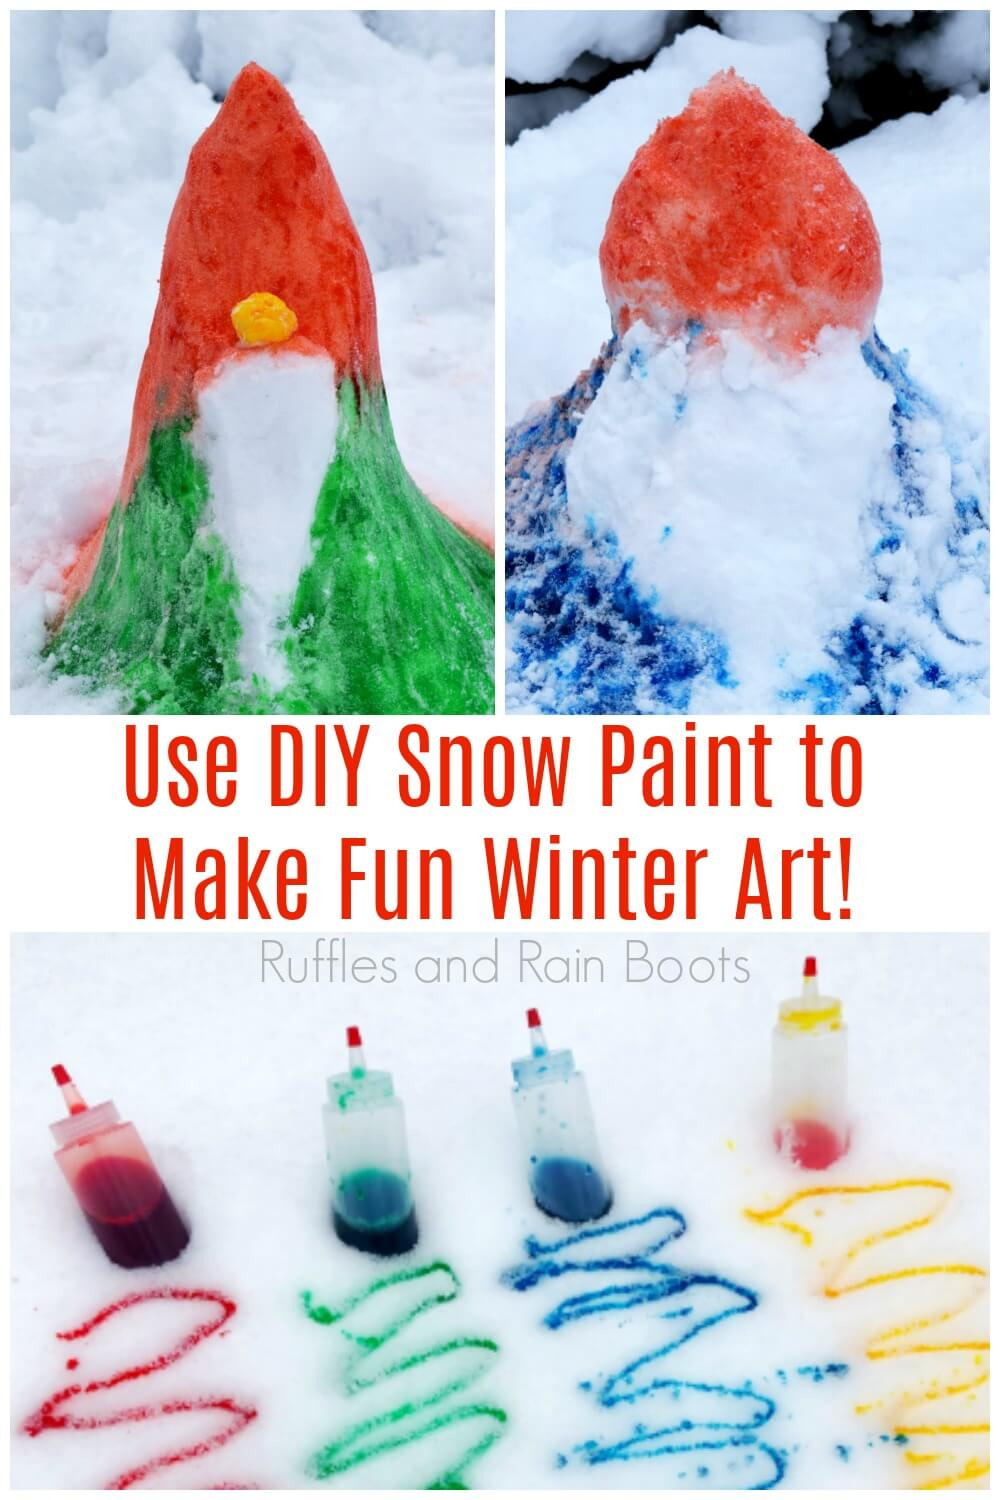 photo collage of snow paint and painted snow gnomes with text which reads use DIY snow paint to make fun winter art